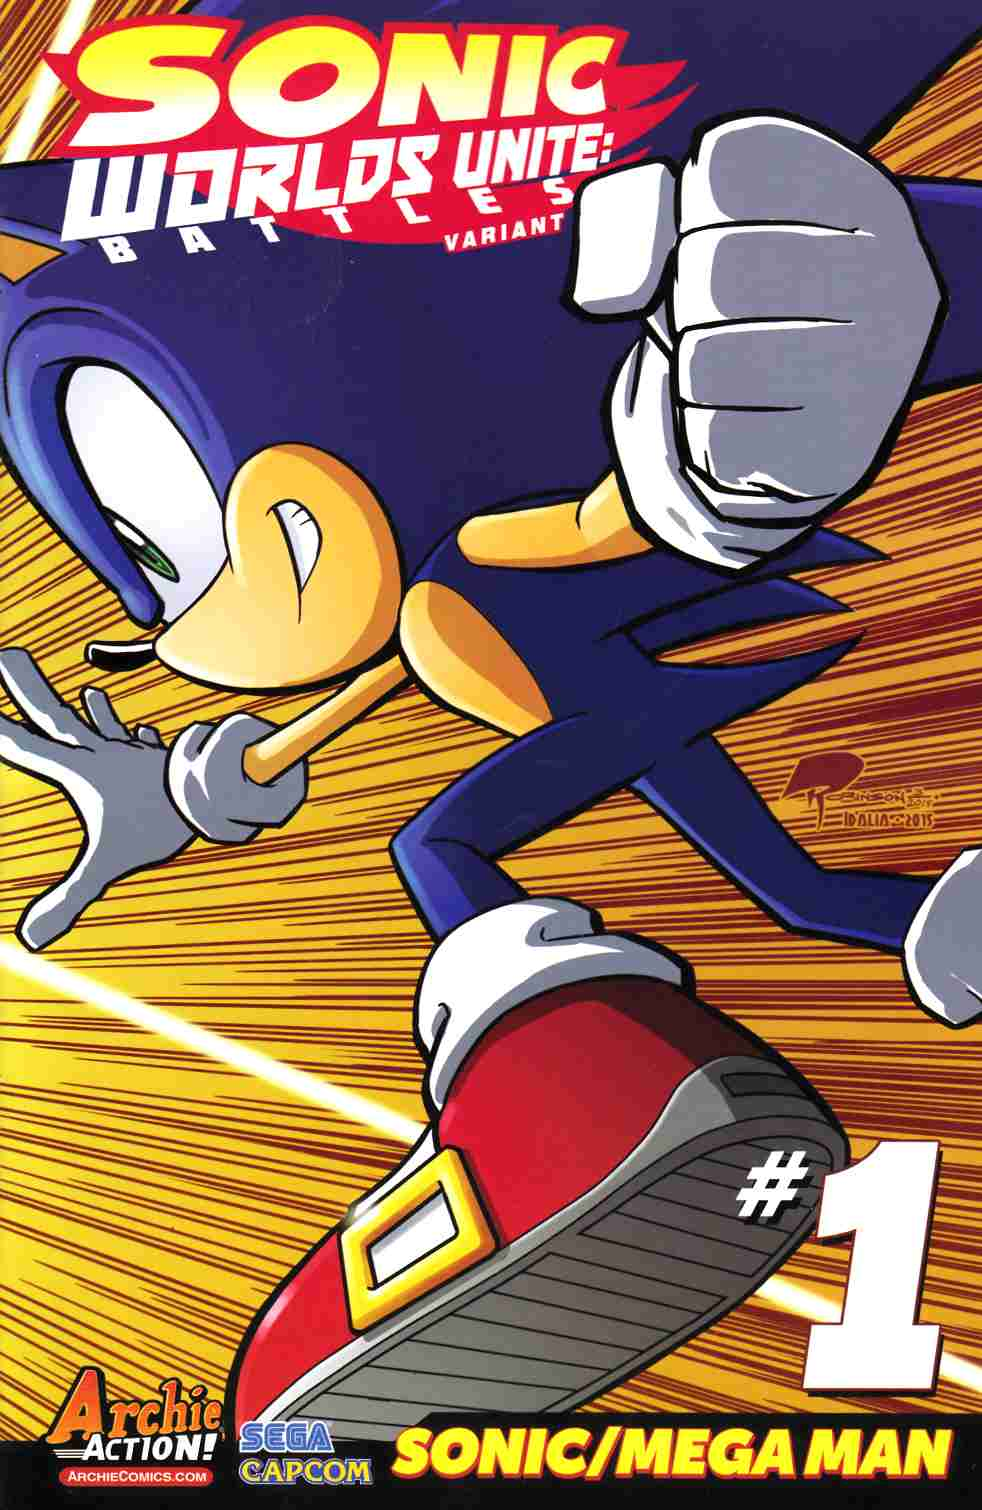 Sonic Worlds Unite Battles #1 Robinson Variant Cover [Archie Comic] THUMBNAIL